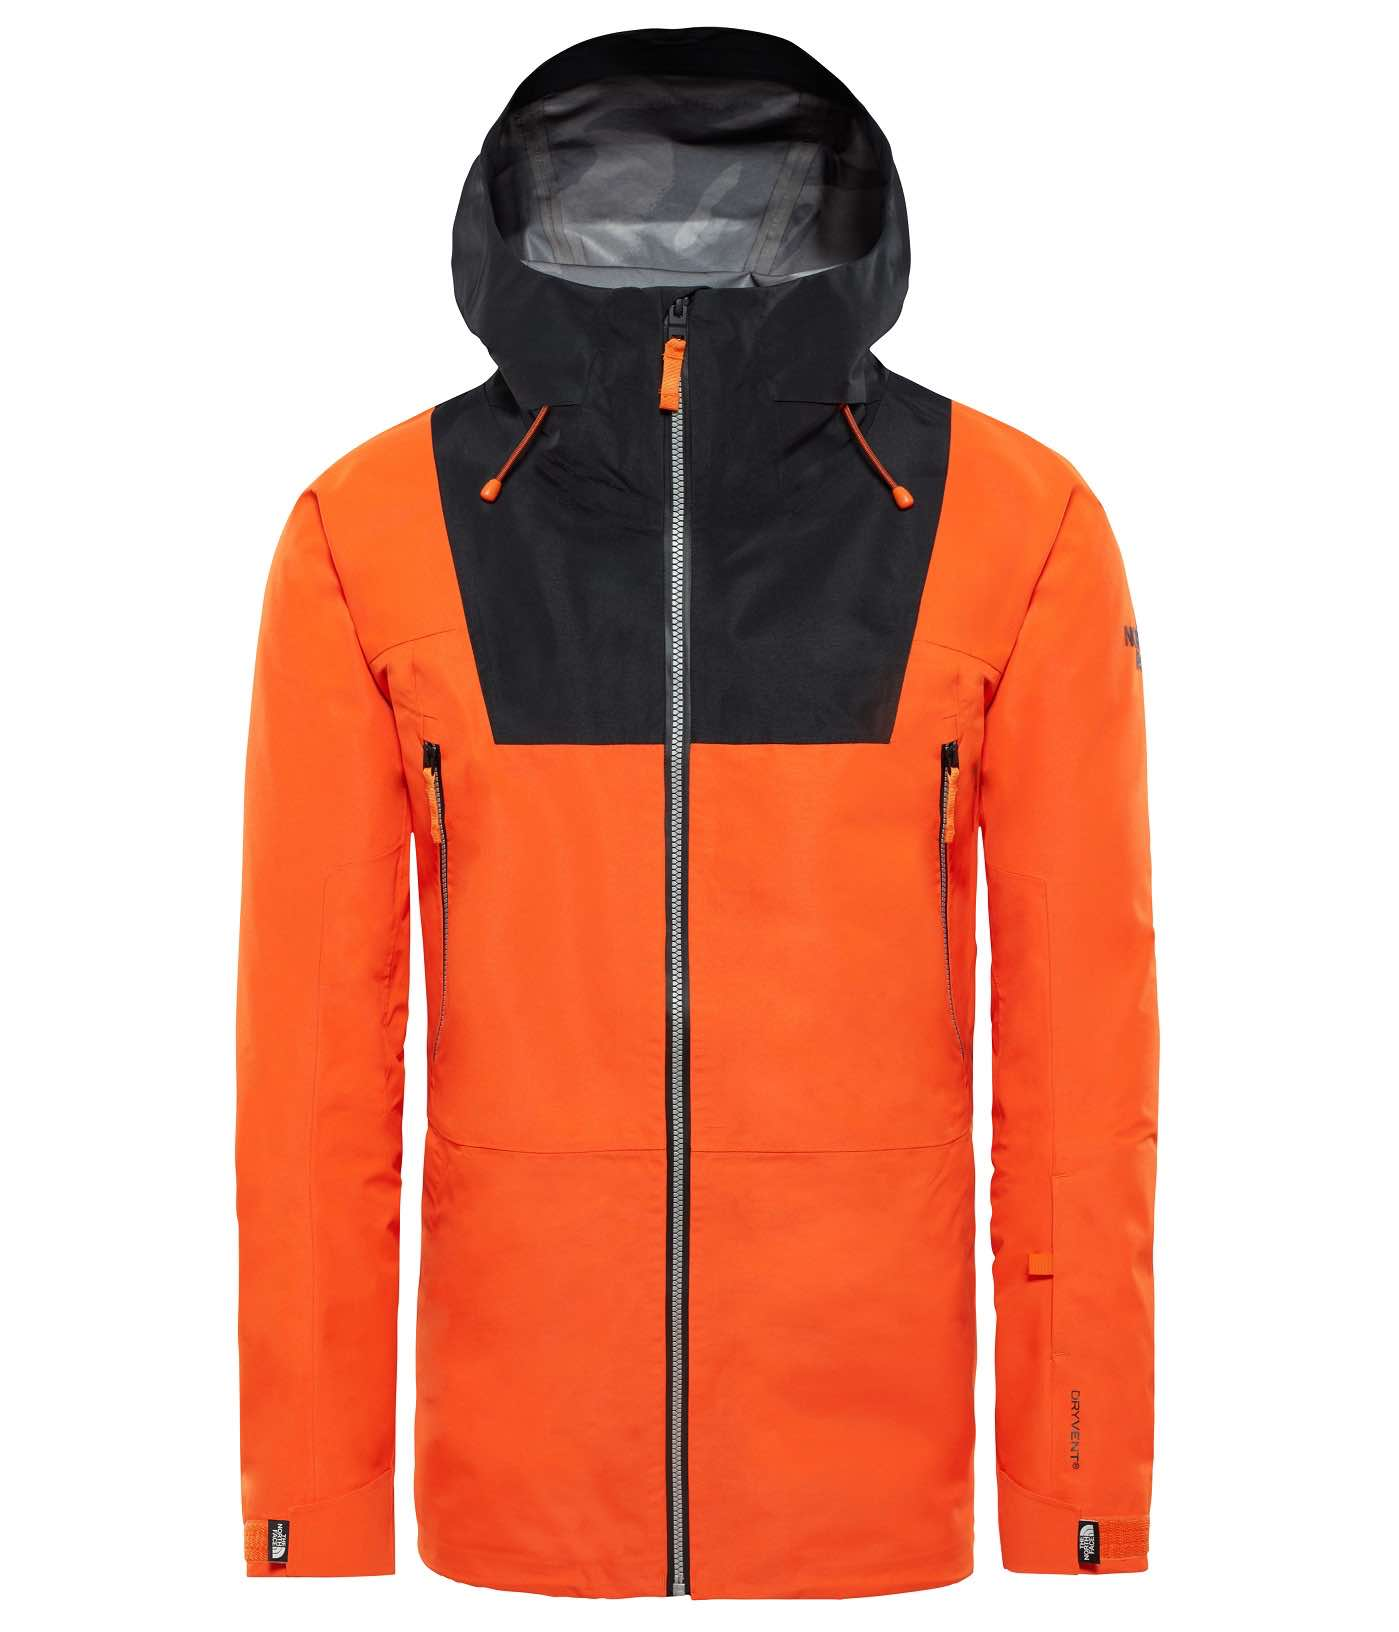 Backcountry con The North Face  giacca e salopette Ceptor 2dcd189fd2f7